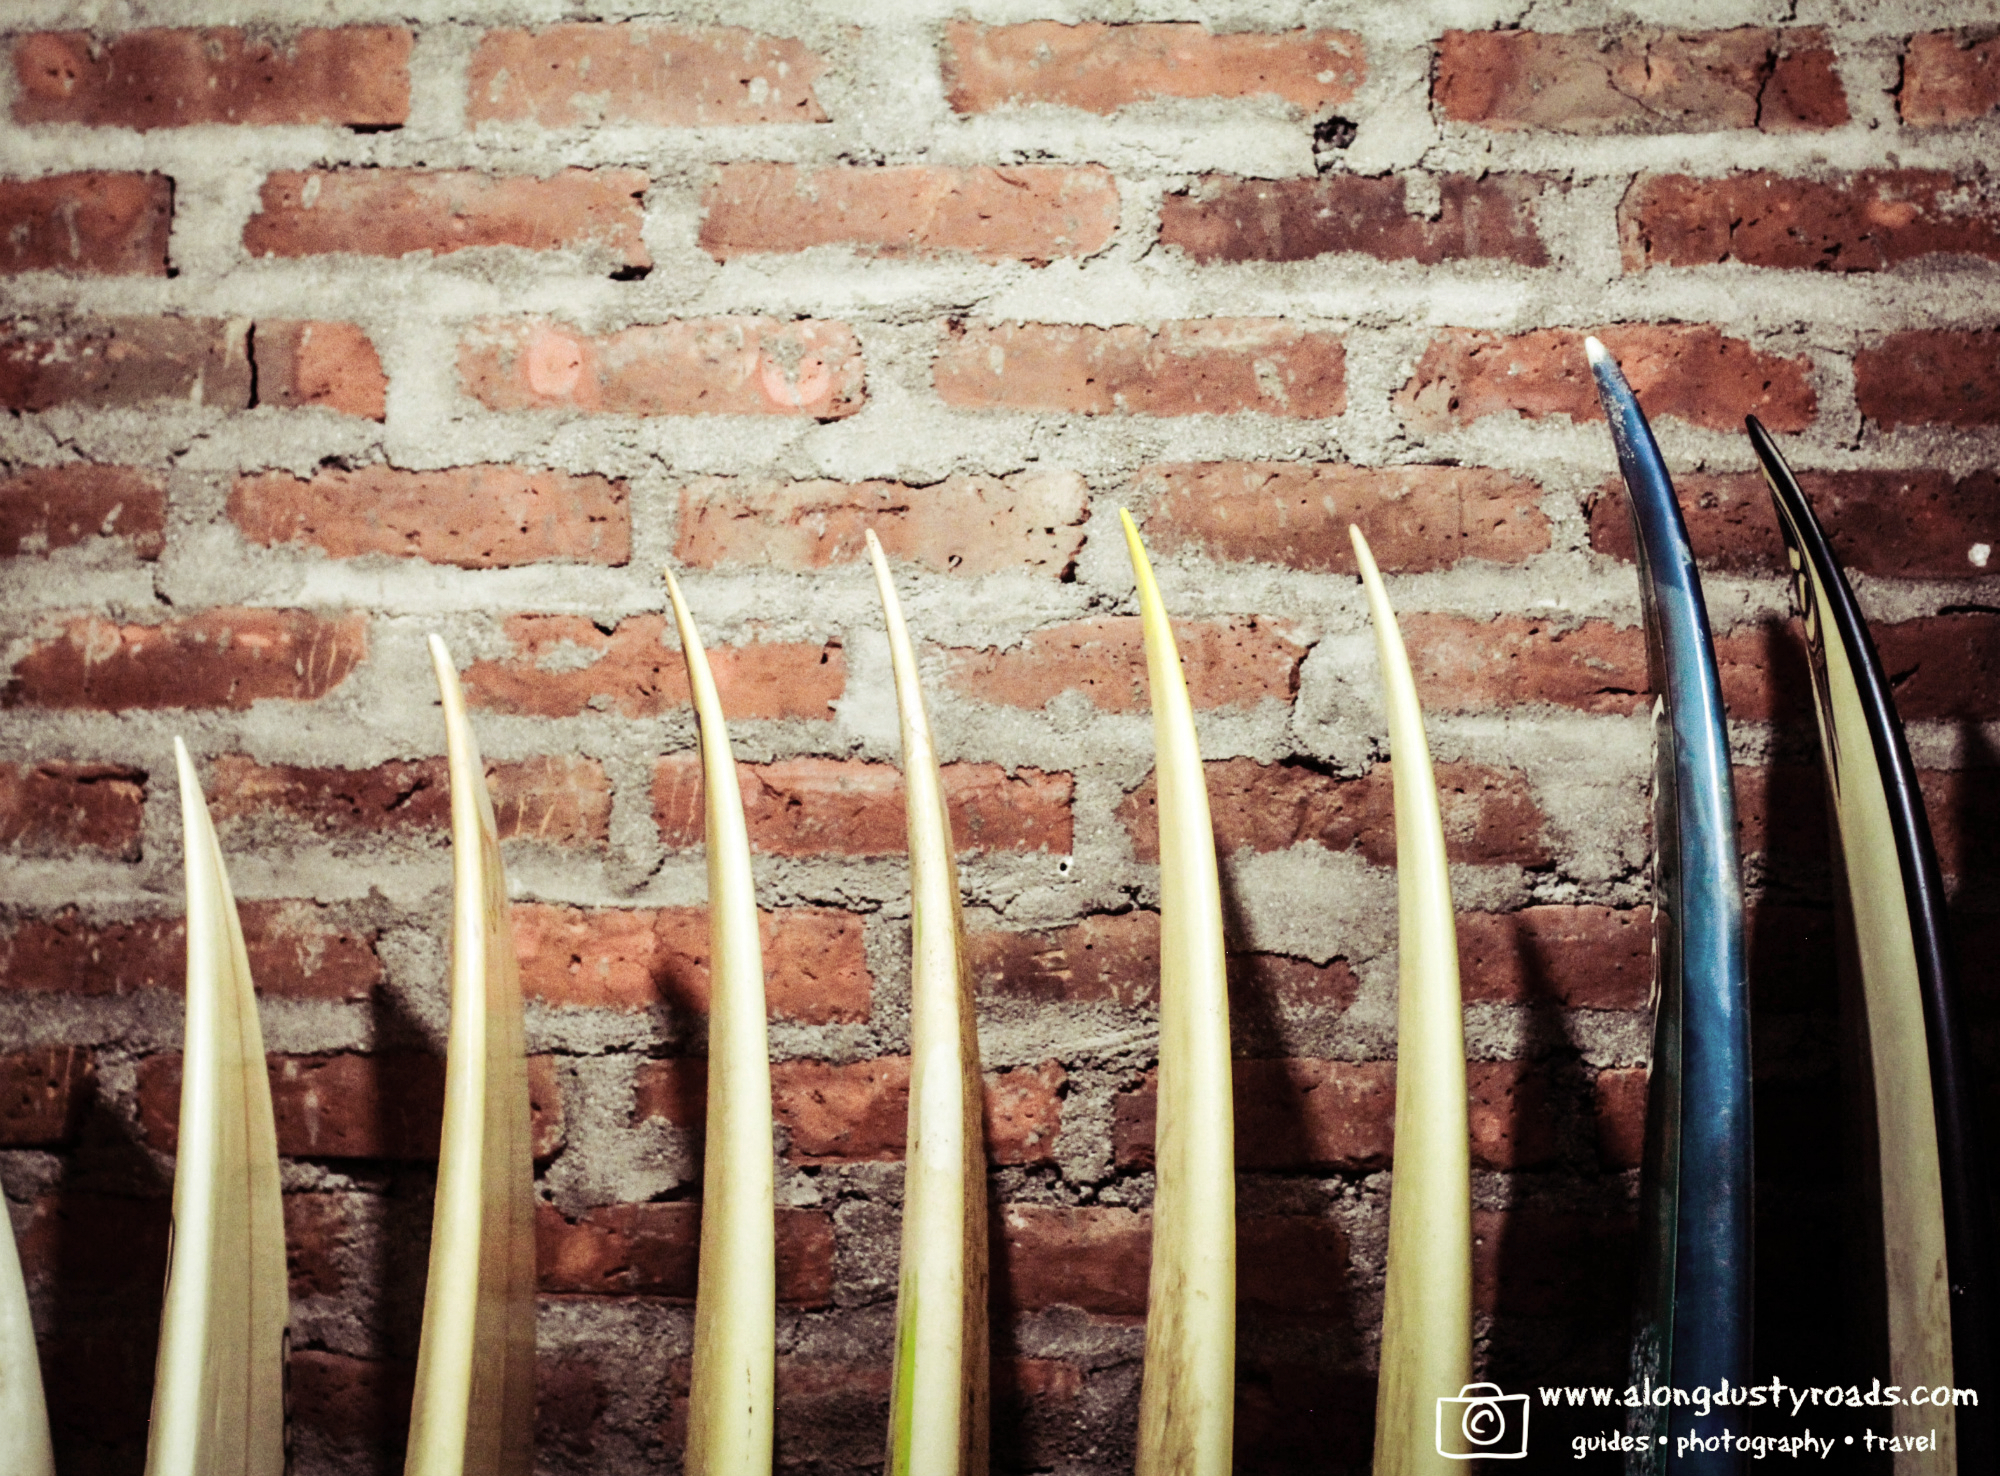 Surfboards at Nicawaves, Nicaragua